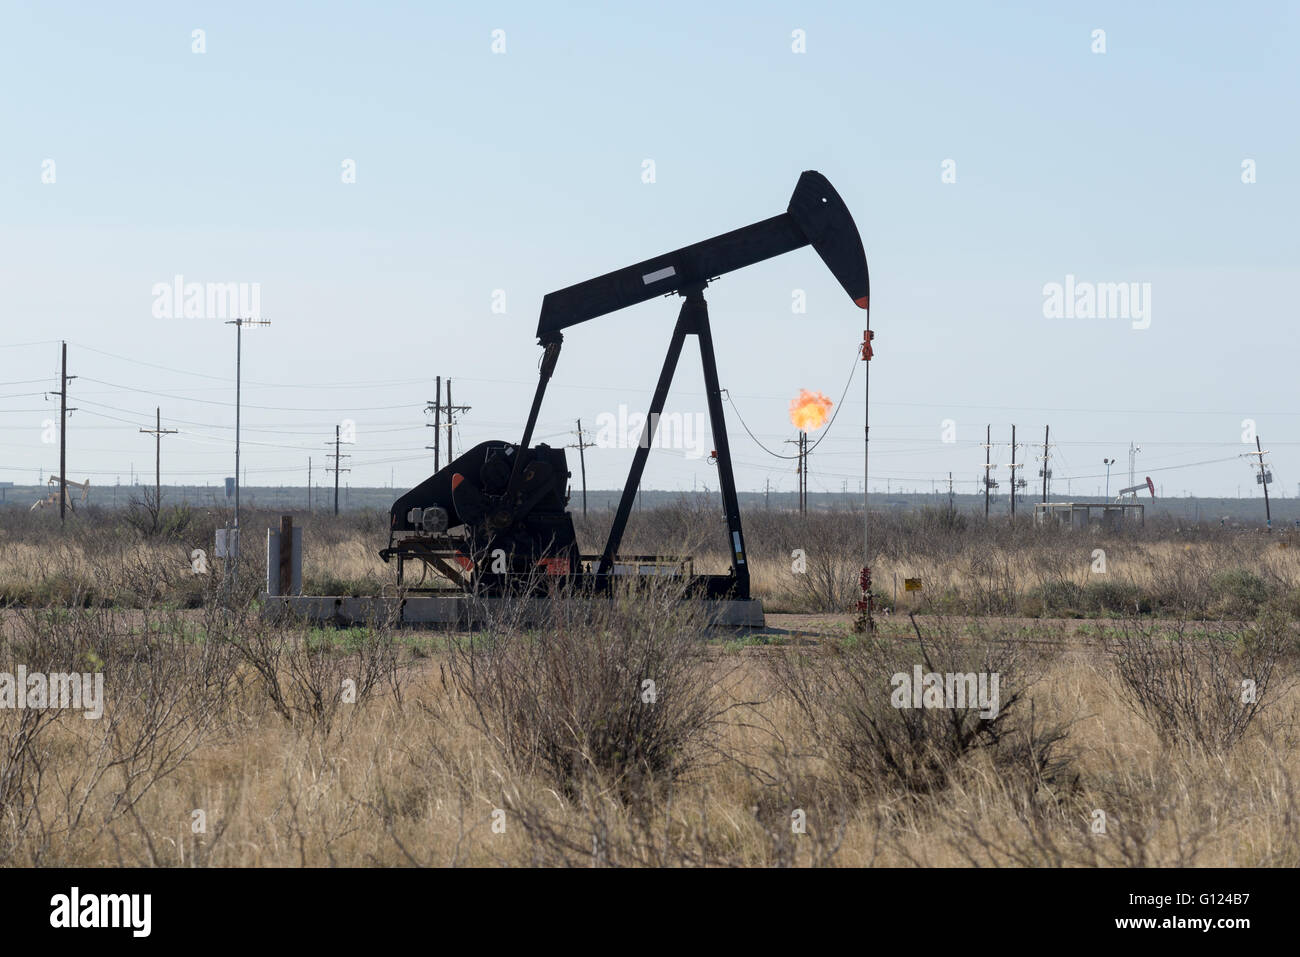 Powerlines, gas flarring and pump jacks in West Texas. - Stock Image